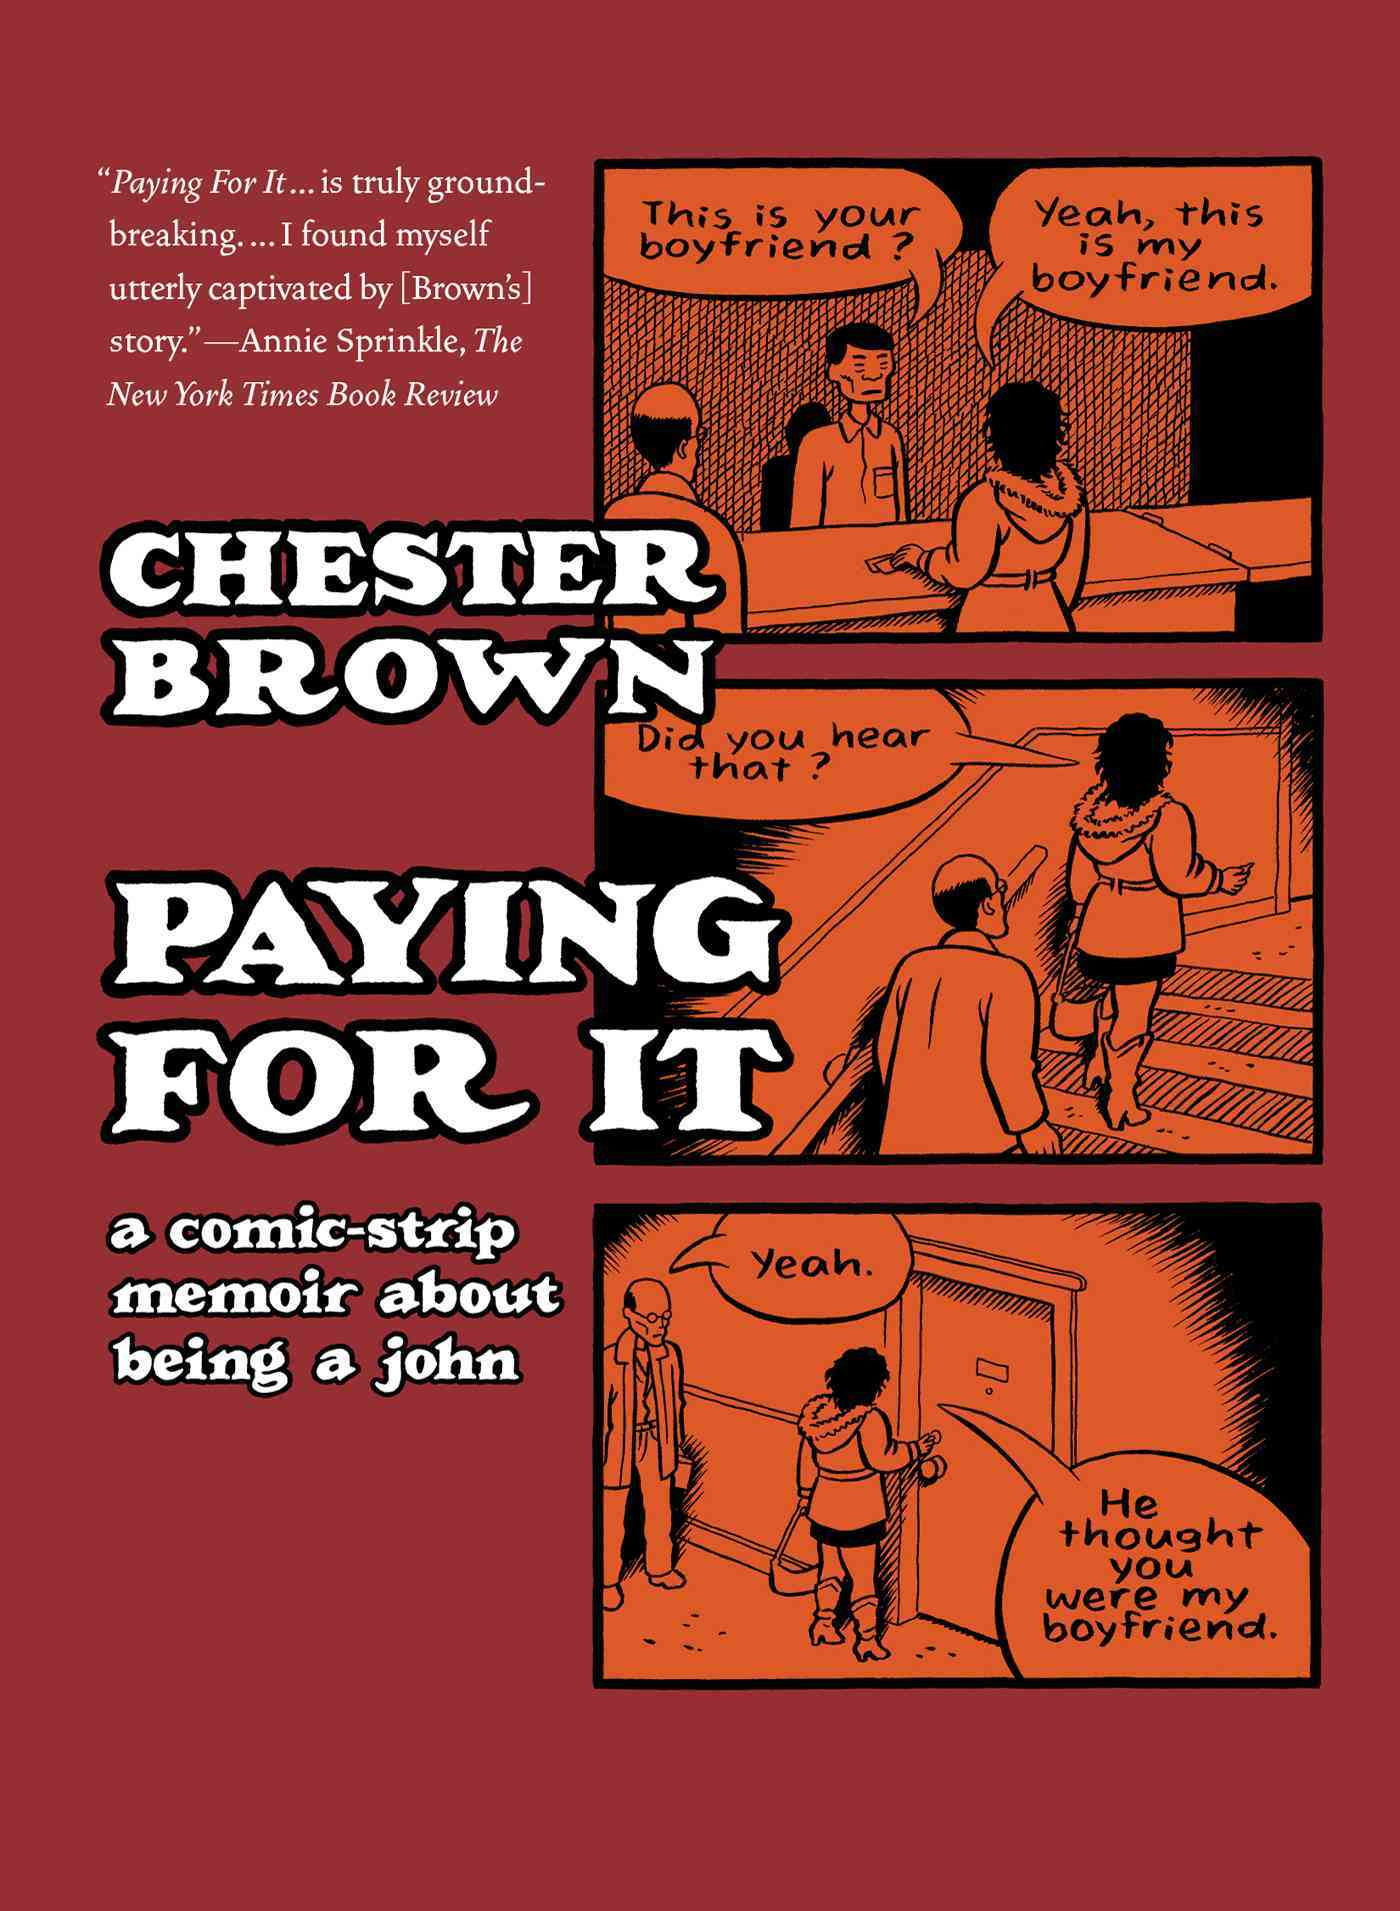 Paying for It: A Comic-strip Memoir About Being a John (Paperback)